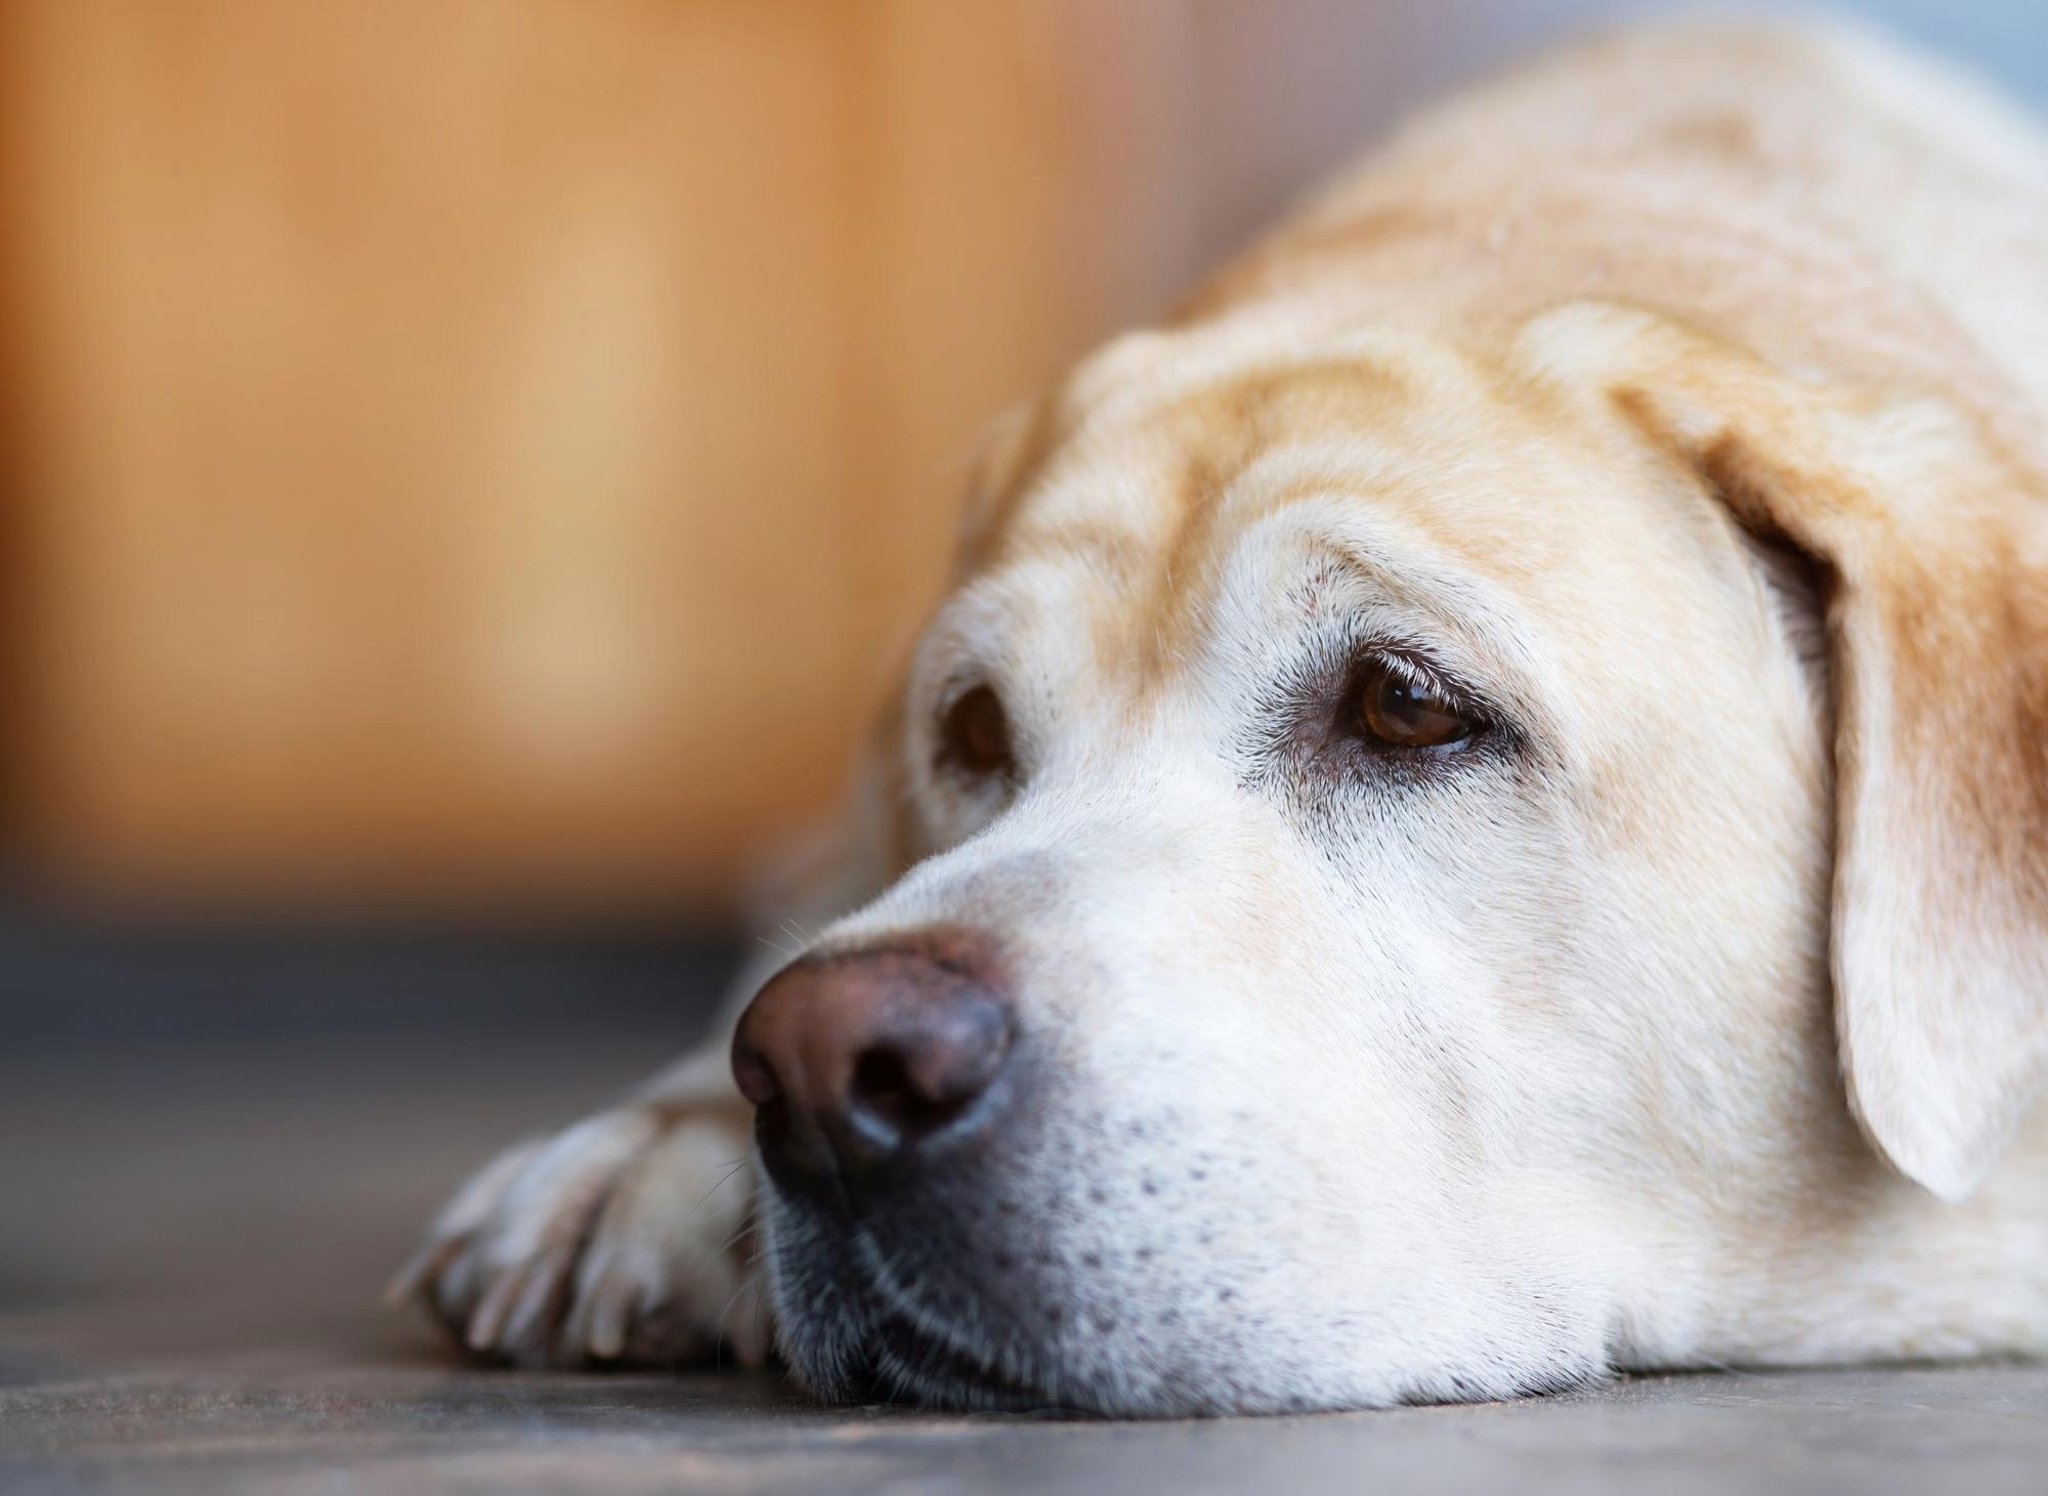 10 breeds of dog most likely to suffer from separation anxiety post-lockdown